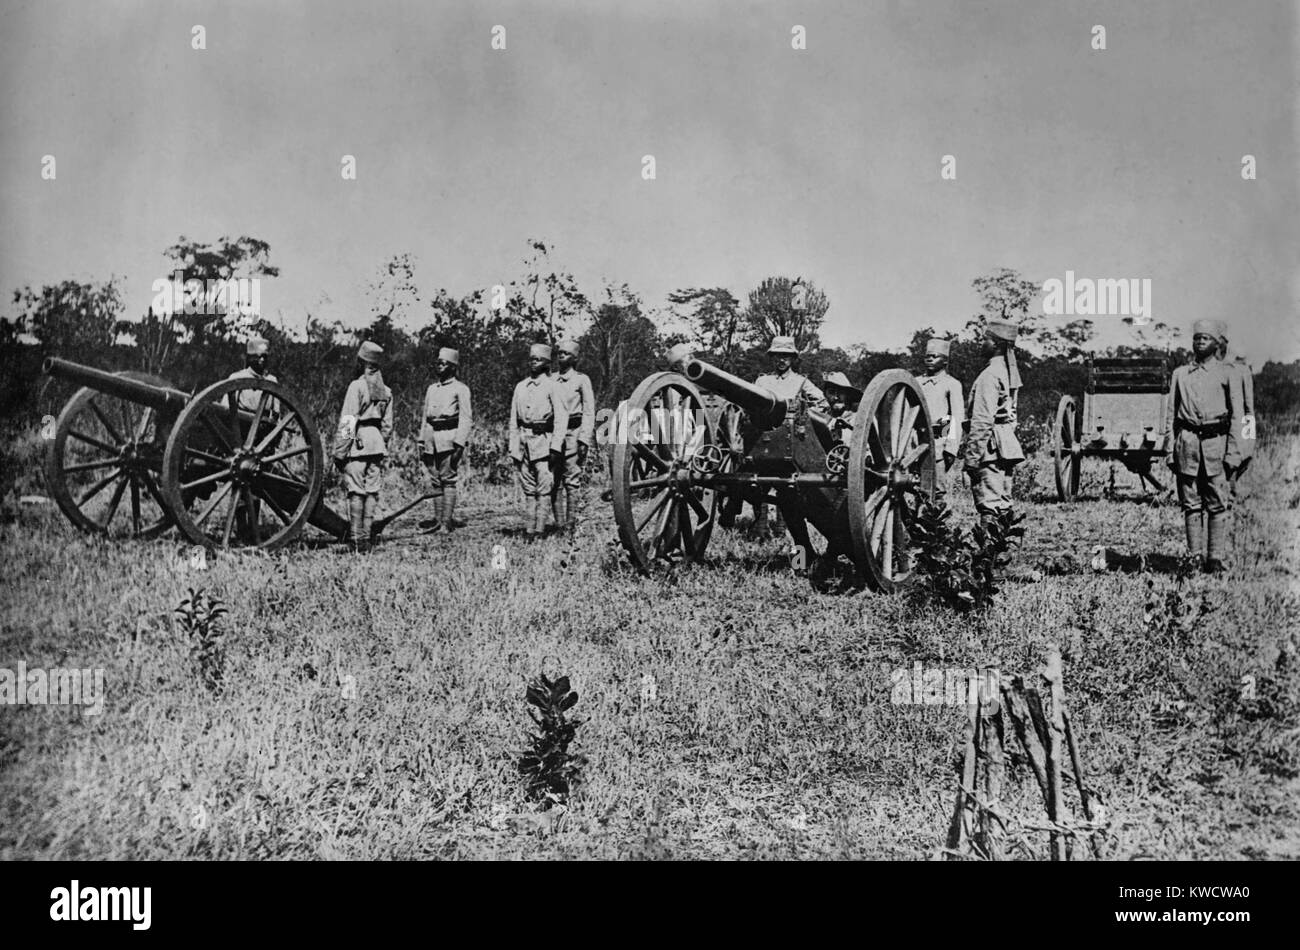 World War 1 in East Africa. German Askaris (native soldiers) posing at attention with artillery. Manning the gun - Stock Image